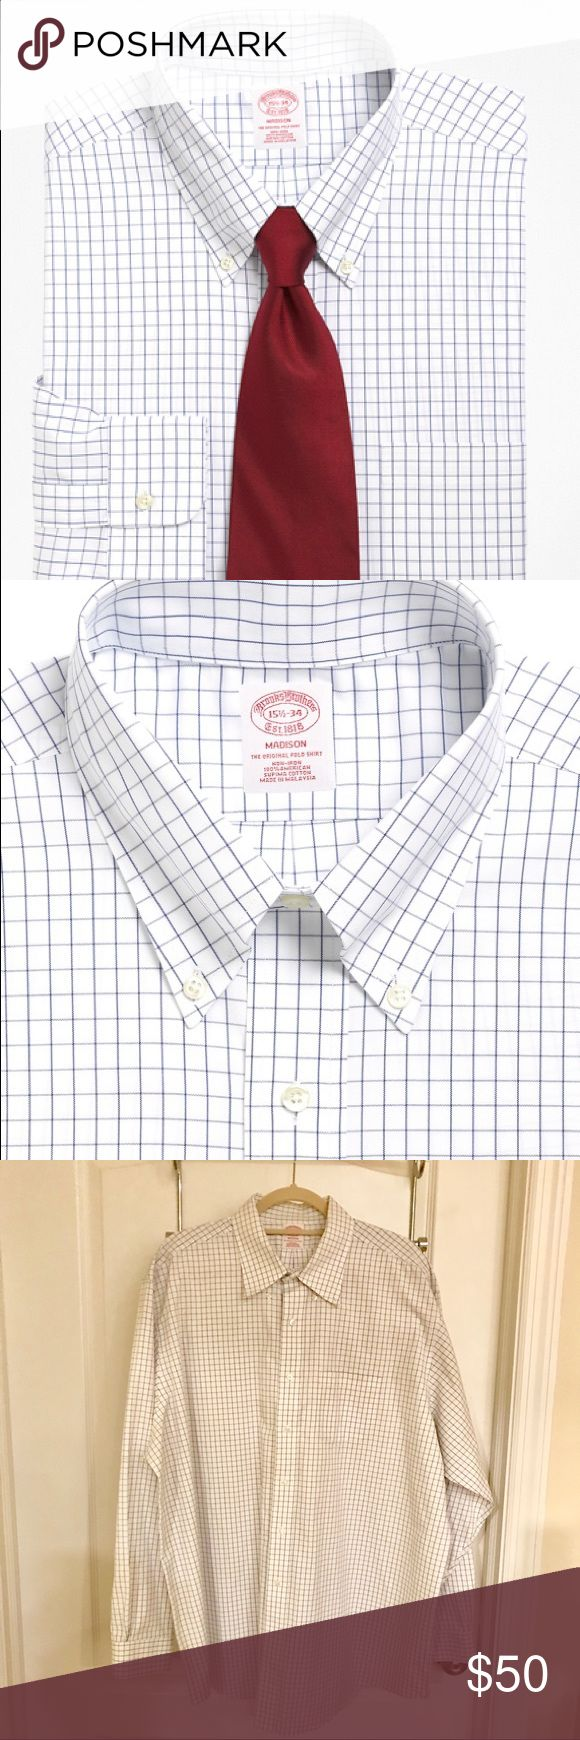 NWOT Madison Fit Windowpane Dress Shirt SIZE 18-36 Additional features include a left chest pocket and a center back pleat. Machine wash according to care instructions for best performance. Imported.  The Madison fit is a classic cut, relaxed in the chest and sleeves.  Size 18-36 NWOT NEVER WORN Brooks Brothers Shirts Dress Shirts